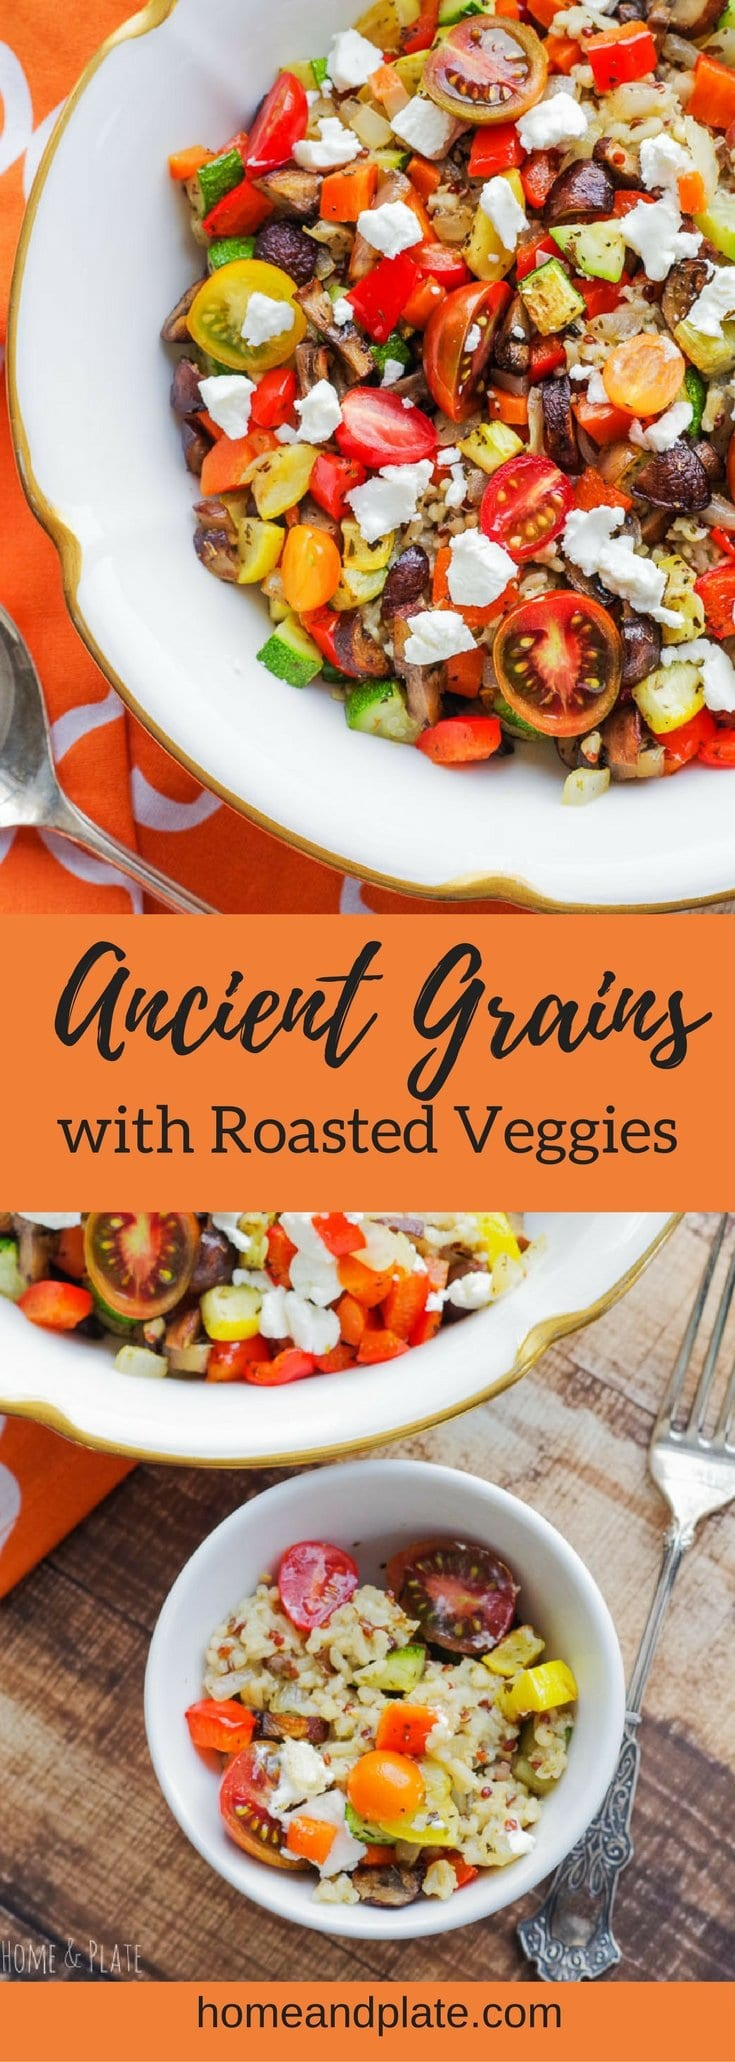 #ad   Ancient Grains Salad with Roasted Vegetables   www.homeandplate.com   Start the new year off right with roasted vegetables, mild sorghum, protein- packed quinoa and whole grain brown rice tossed with goat cheese for a vegetarian dish that is nutritious and full of flavor.